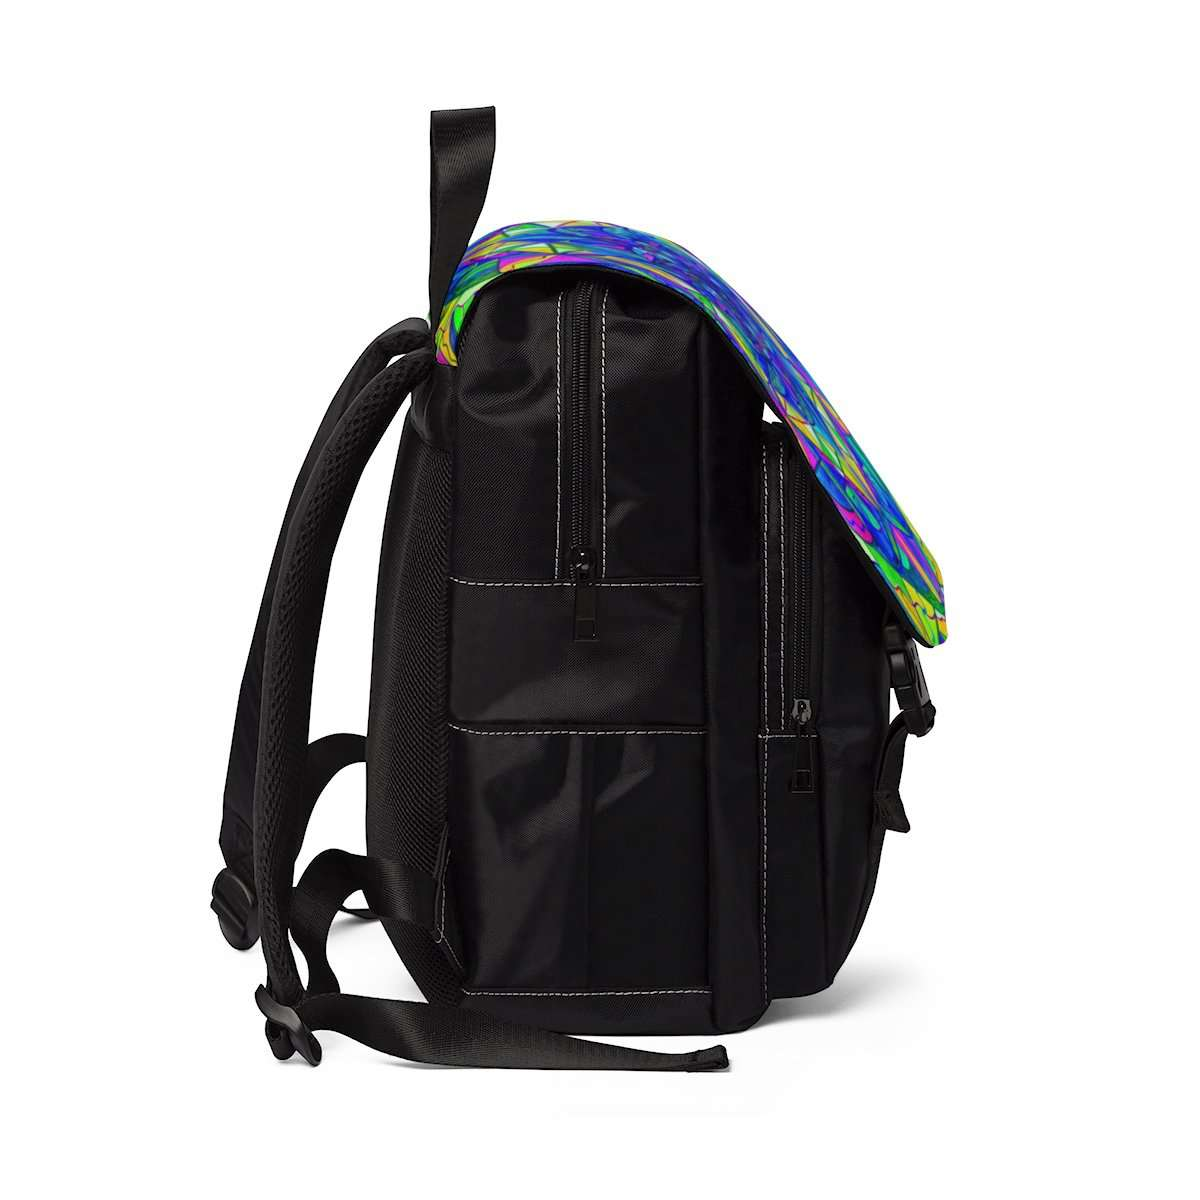 Positive Focus - Unisex Casual Shoulder Backpack